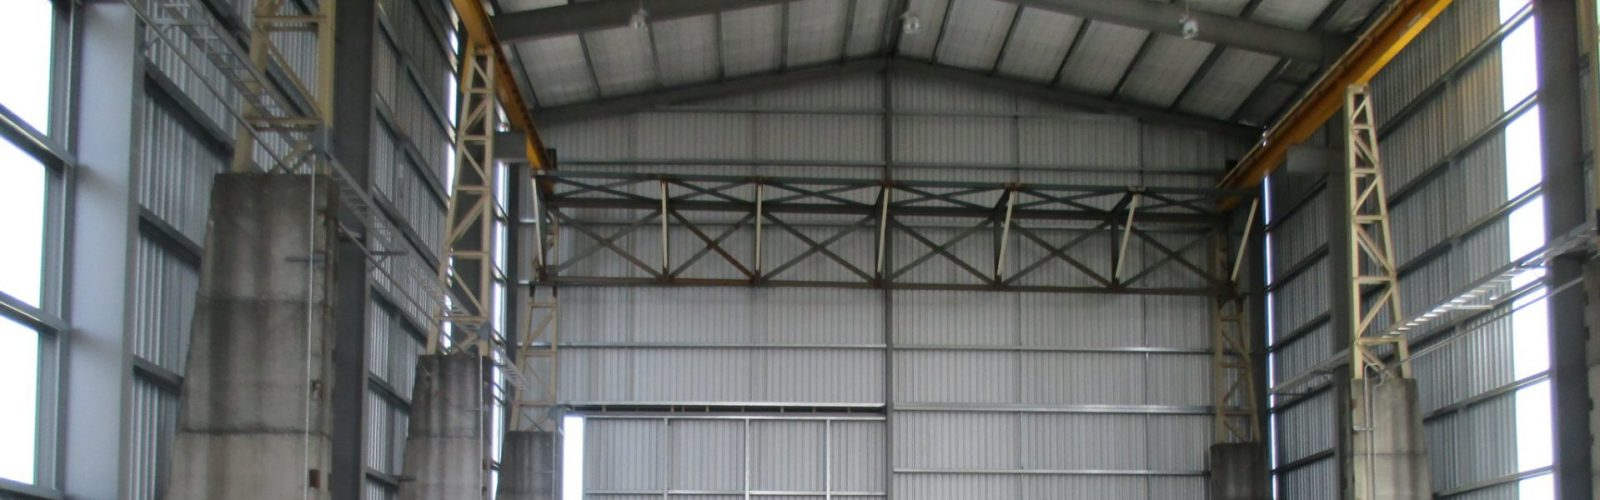 Bay 8 gantry crane enclosure - Header Image